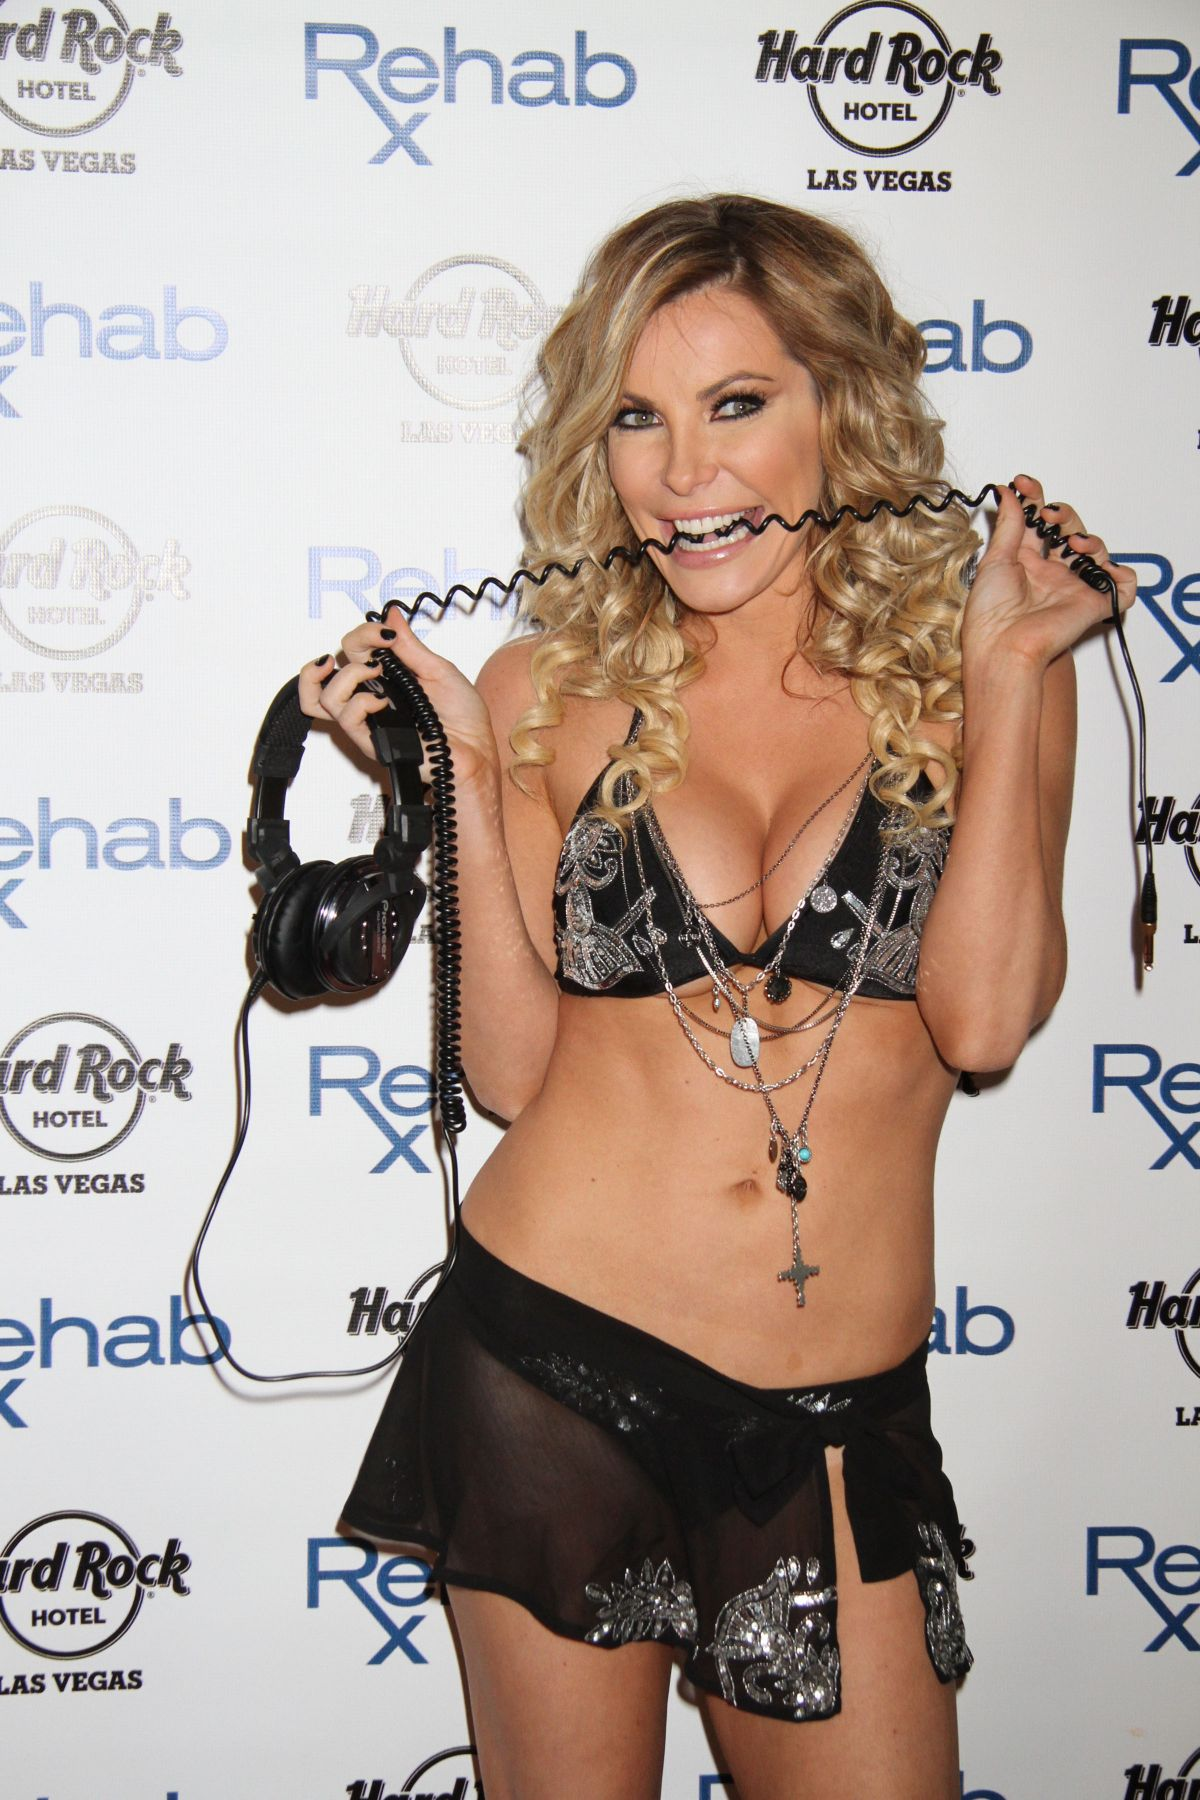 CRYSTAL HEFNER at Rehab Bikini Invitational Round 1 in Las Vegas